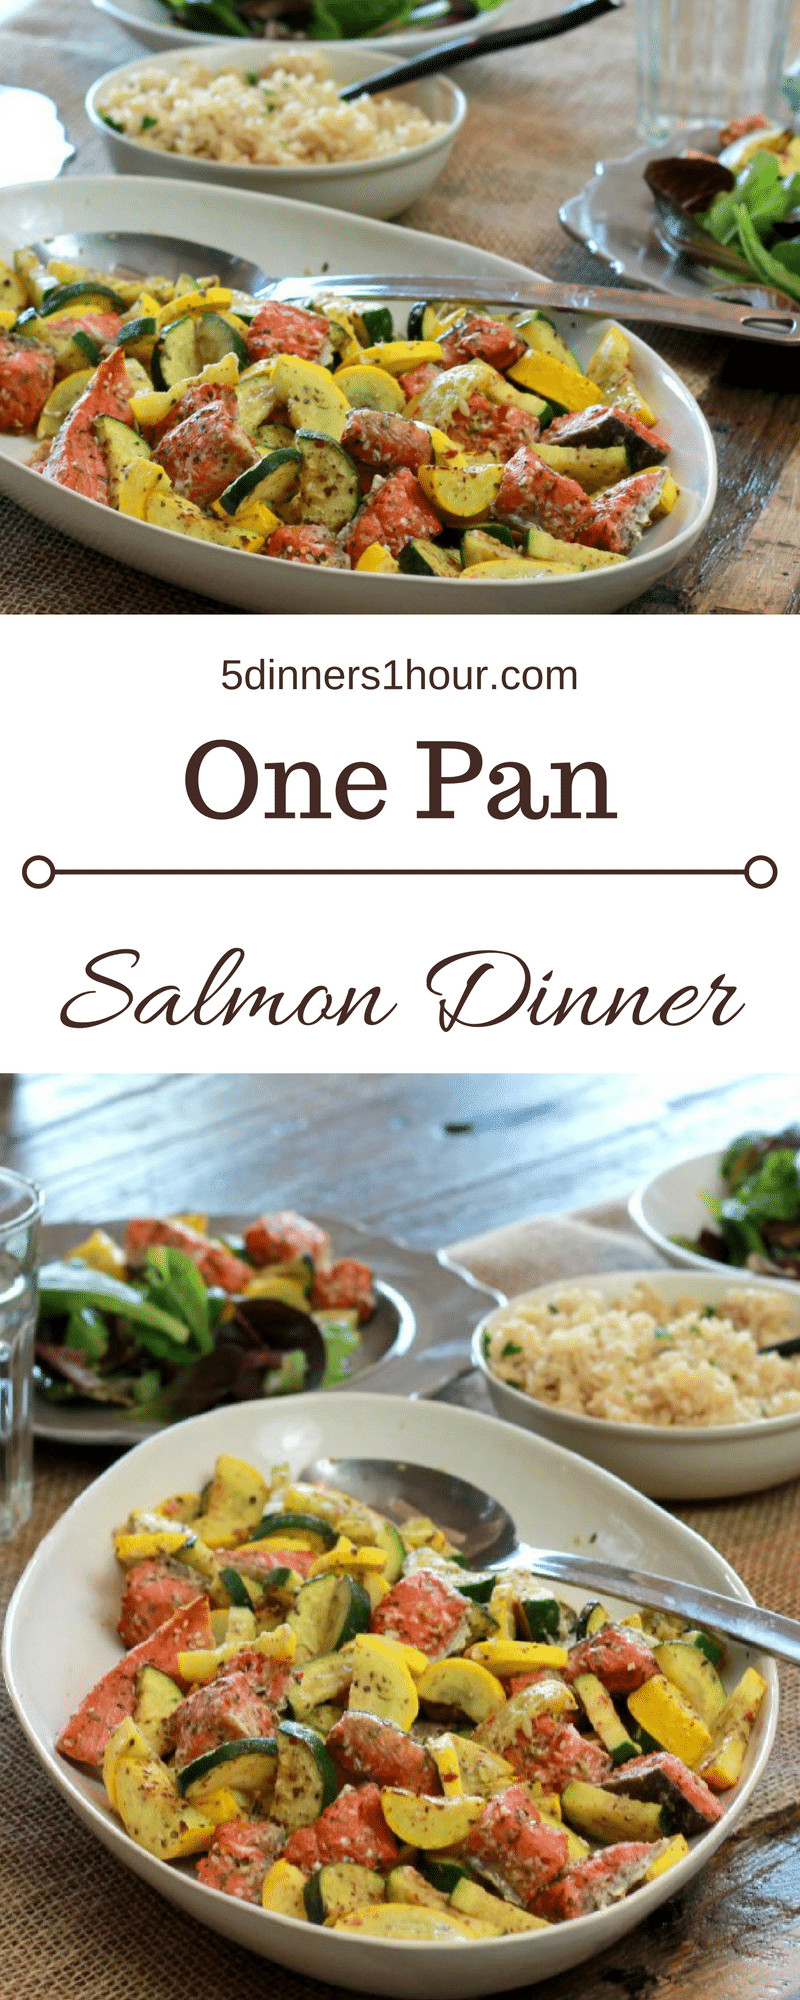 5 Dinners In 1 Hour  5 Minute Quick Salmon Dinner 5 Dinners In 1 Hour